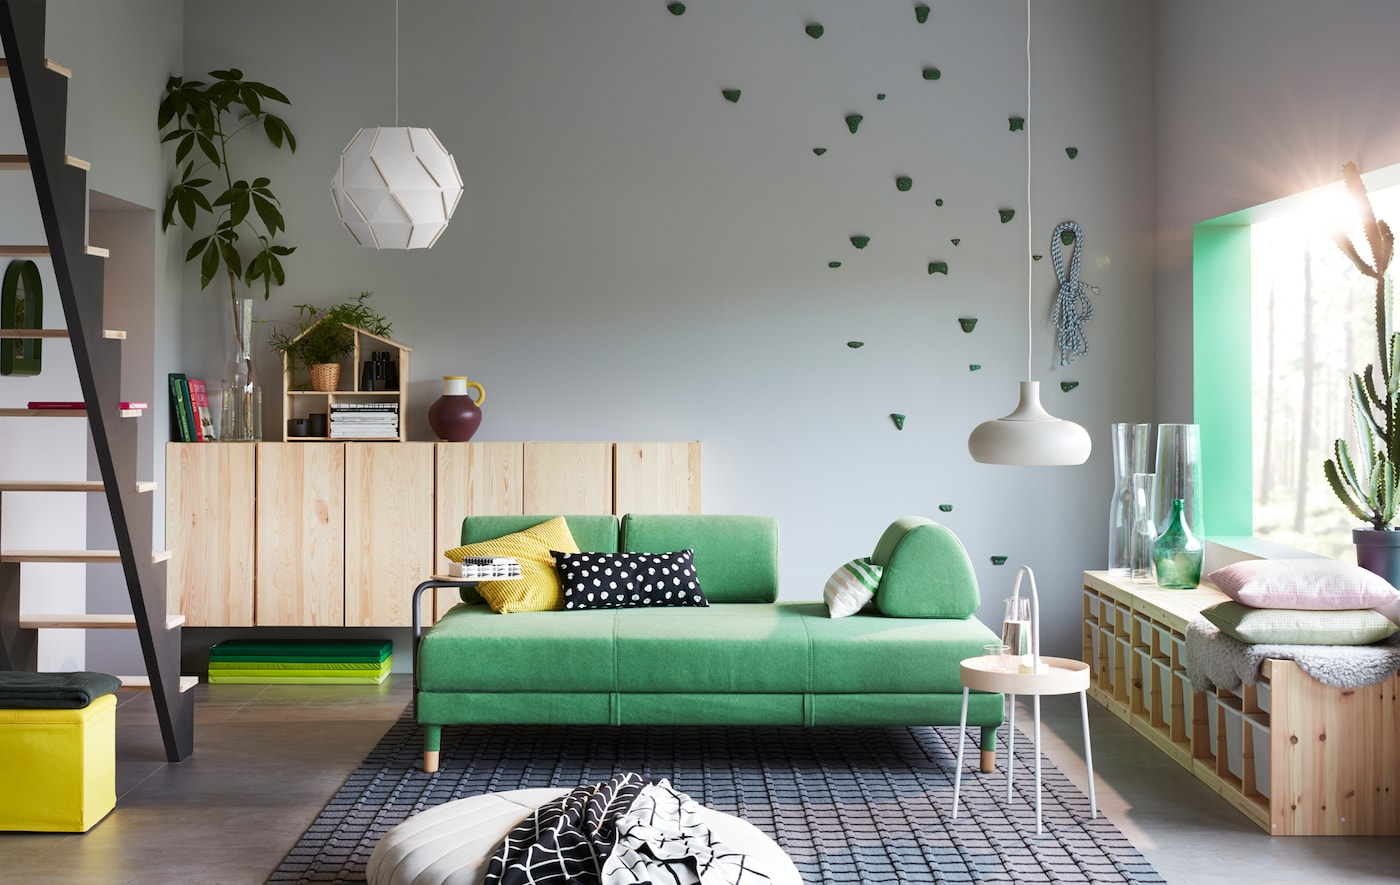 A living room with green sofa, side table and storage cabinets.